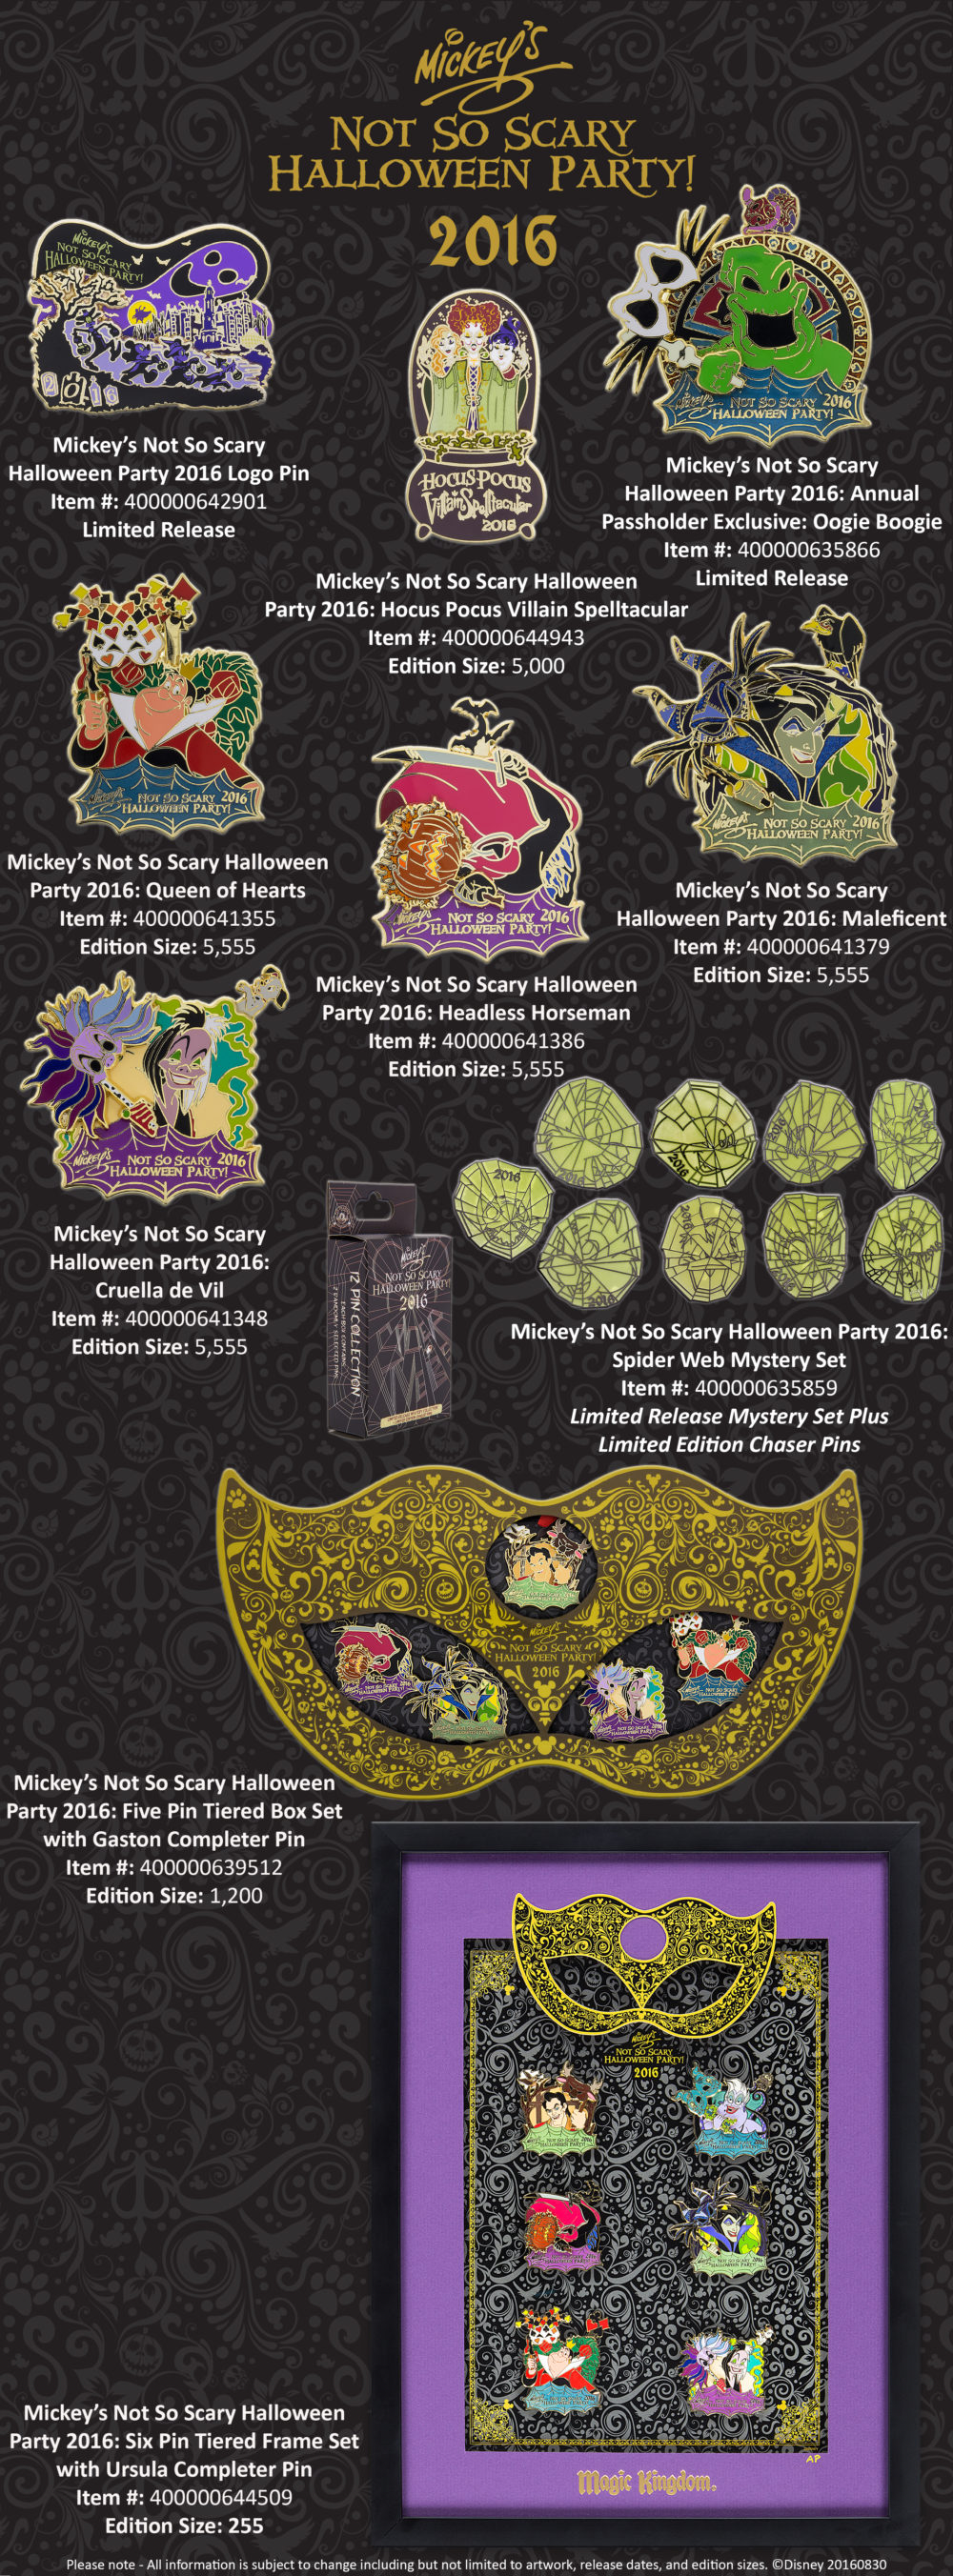 mickey's not so scary halloween party pins announced | | diskingdom